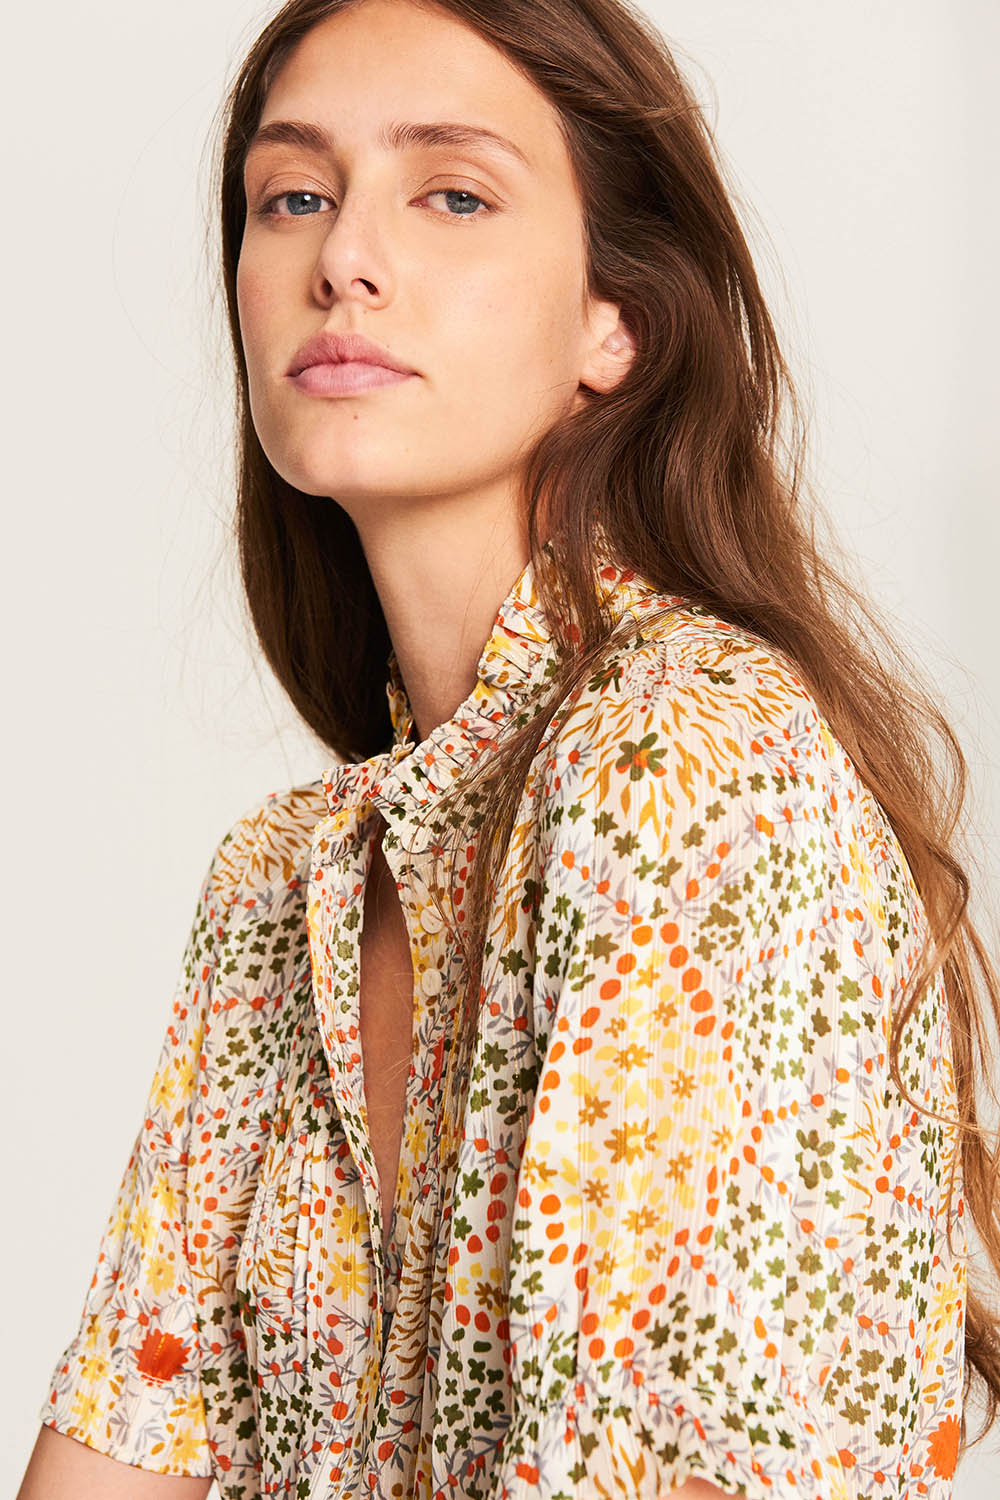 BA&SH CLOTHING - Hippy Shirt online at PAYA boutique